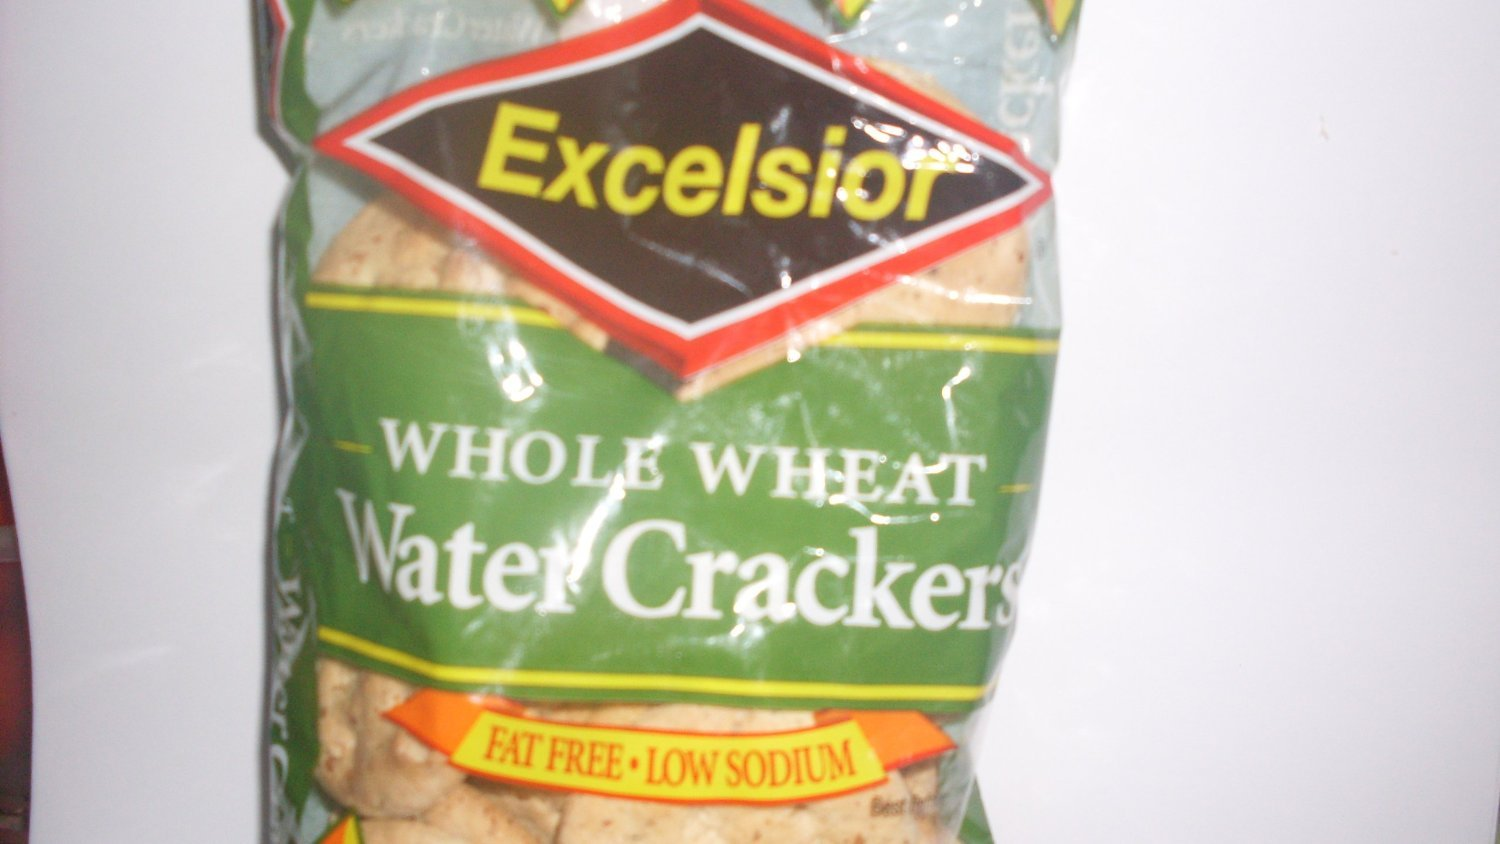 Excelsior Jamaican whole wheat Water Crackers, 5.04oz (Pack of 24)